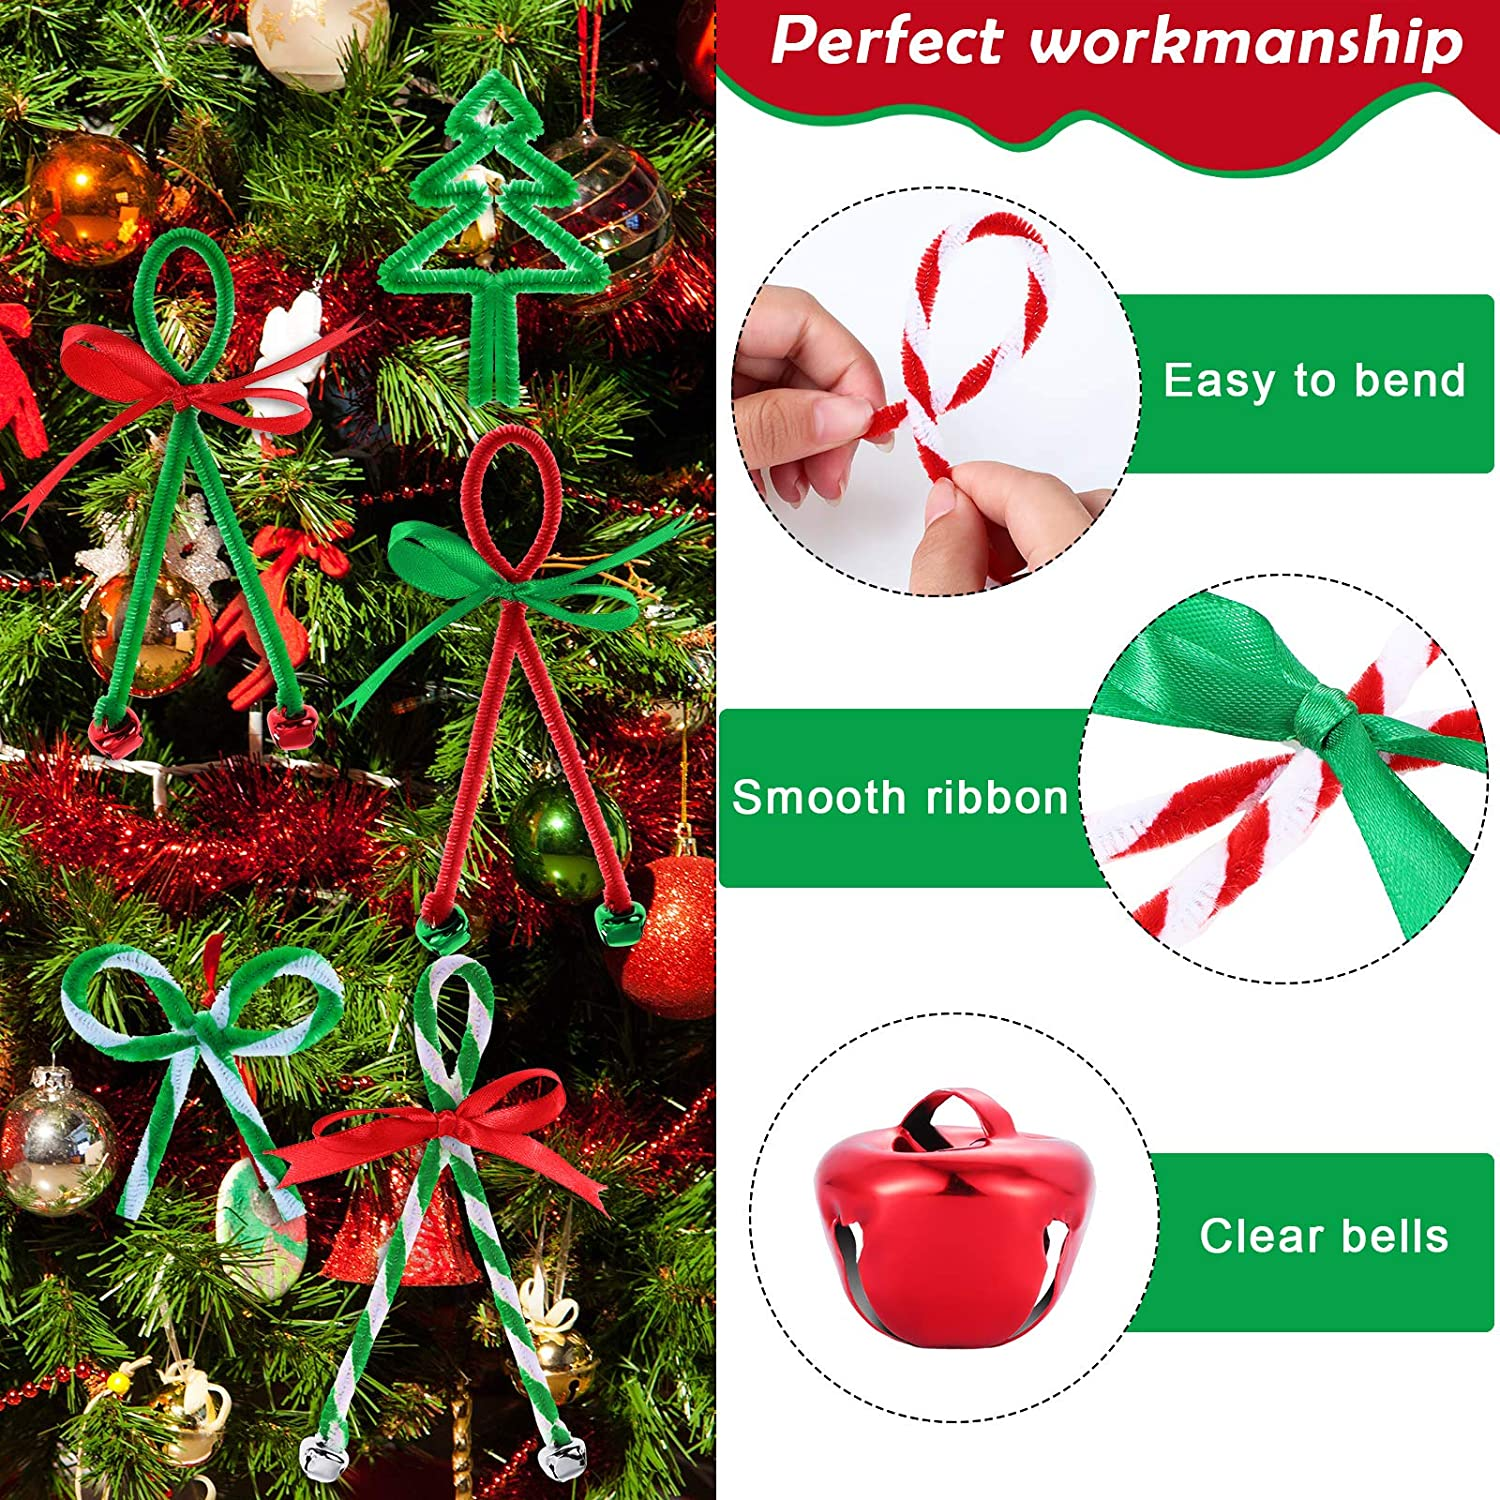 200 Colorful Christmas Jingling Bell 302 Pieces Christmas Jingling Bell Wreath Ornament Craft Kit Includes 100 Chenille Stems Craft Pipe Cleaner Decoration 2 Rolls 25 Yard Ribbon for Creative Craft